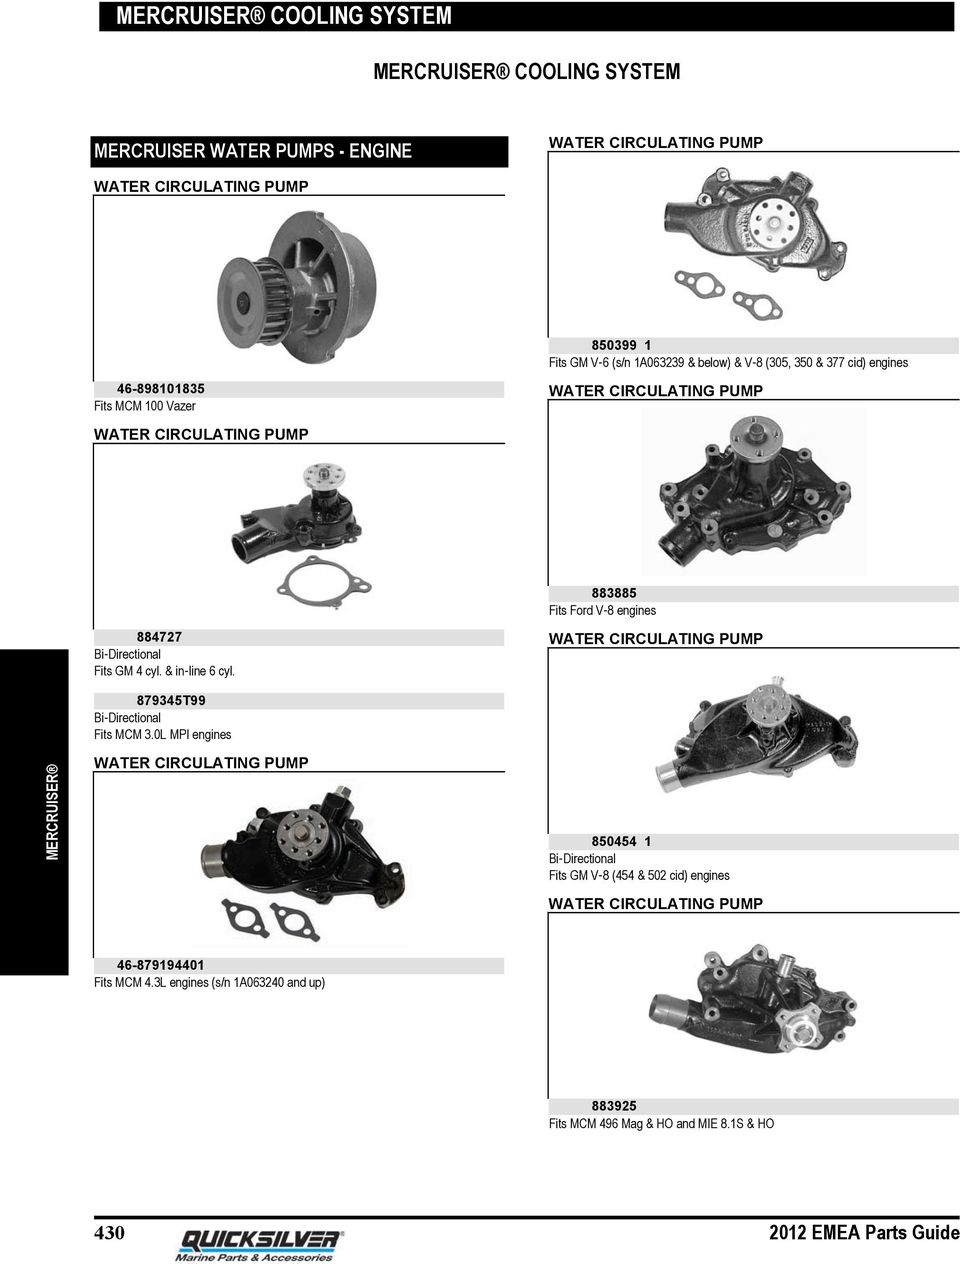 Mercruiser Cooling System Pdf 1998 Omc 4 3 V6 Wiring Diagram Cyl In Line 6 Water Circulating Pump 879345t99 Bi Directional Fits Mcm